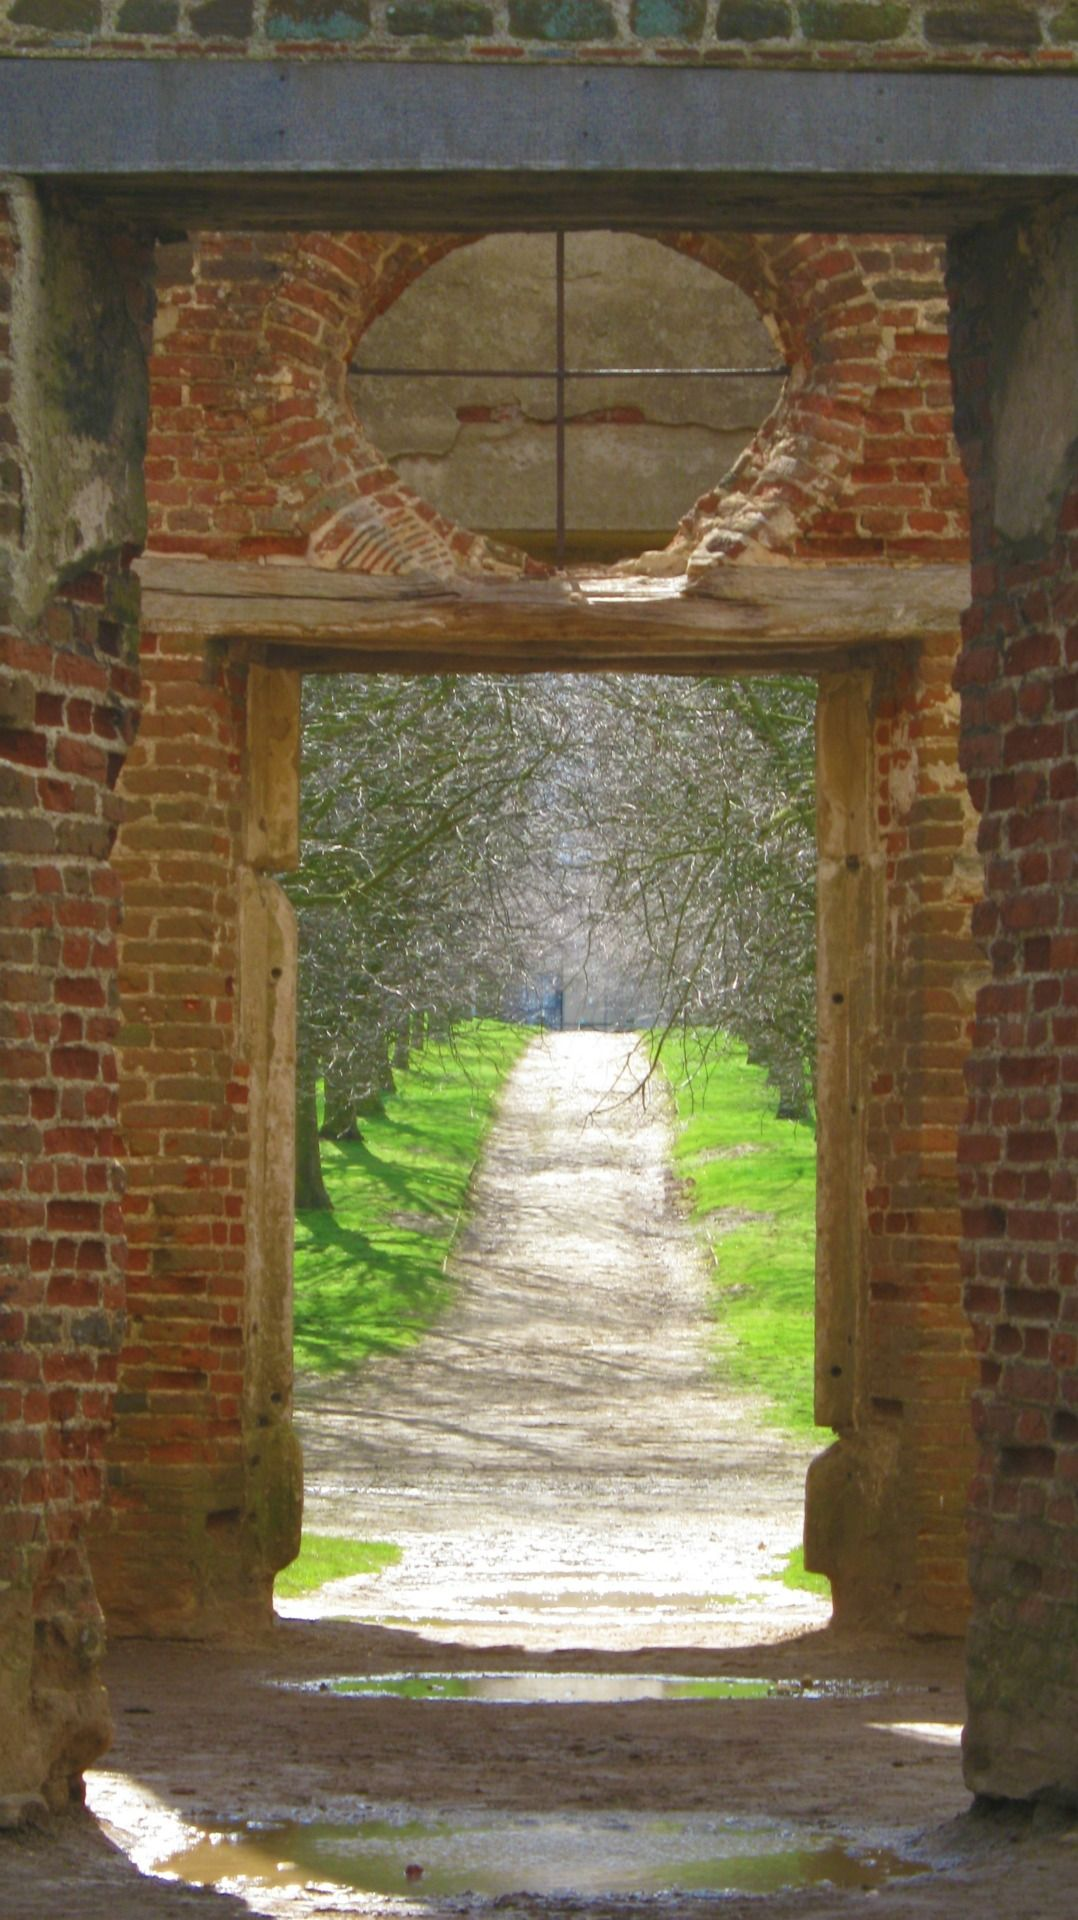 (Houghton House, Bedfordshire)